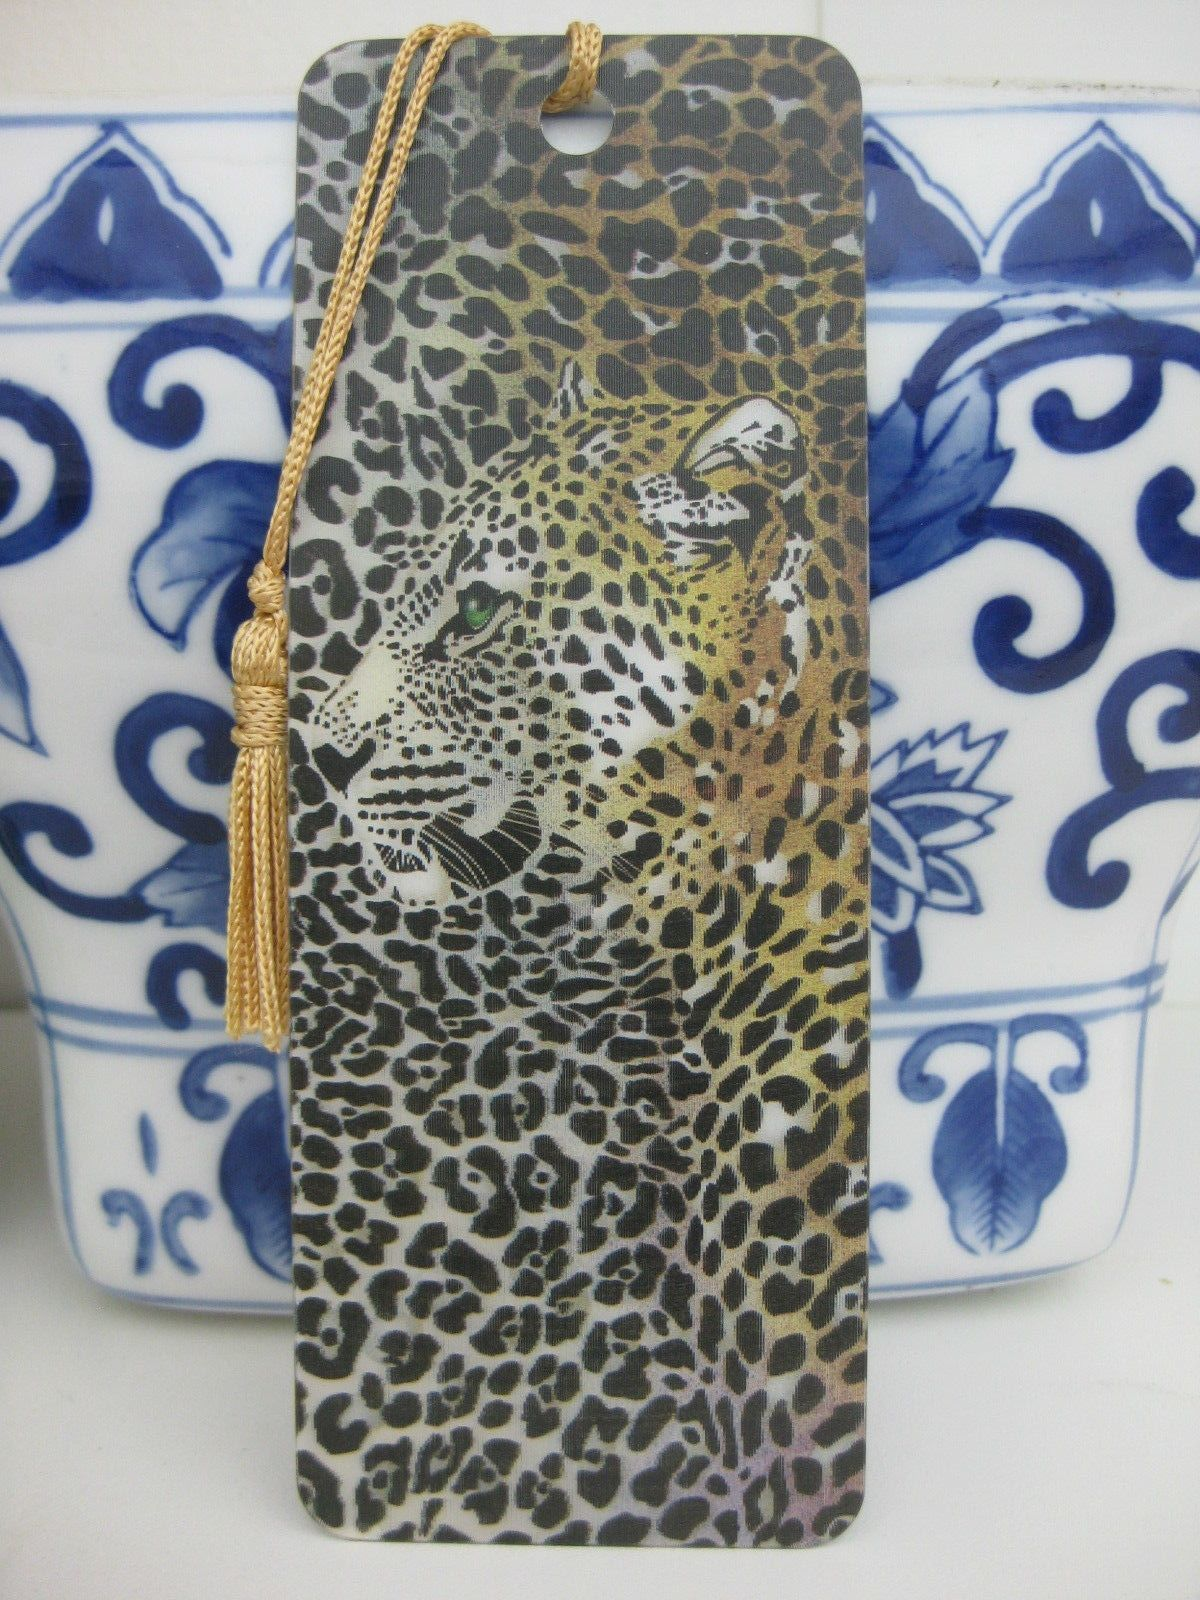 Primary image for LEOPARD CHEETAH BOOKMARK 3D Motion Hologram TASSEL TRENZ USA MADE